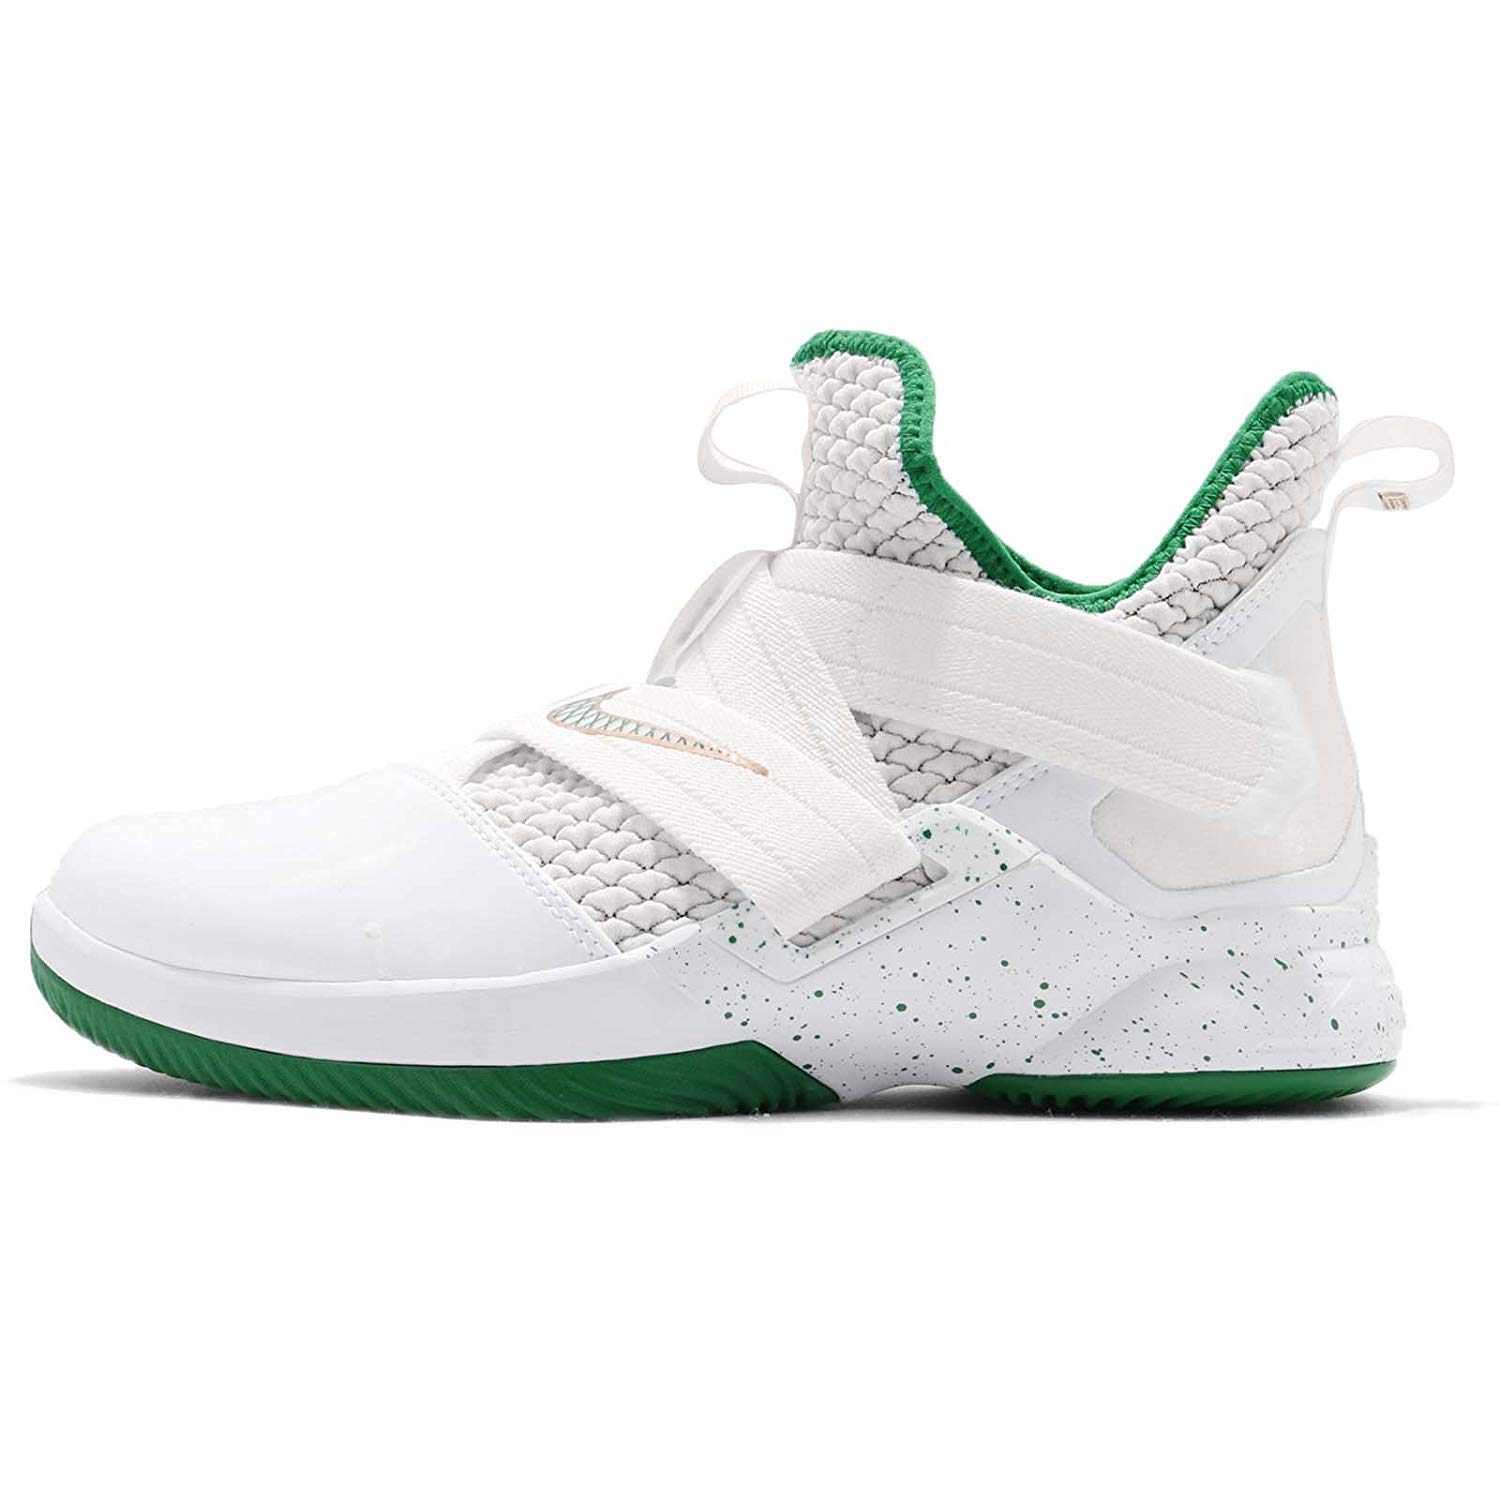 new style cecc4 fcca7 Nike Kids' Grade School Lebron Soldier XII Basketball Shoes